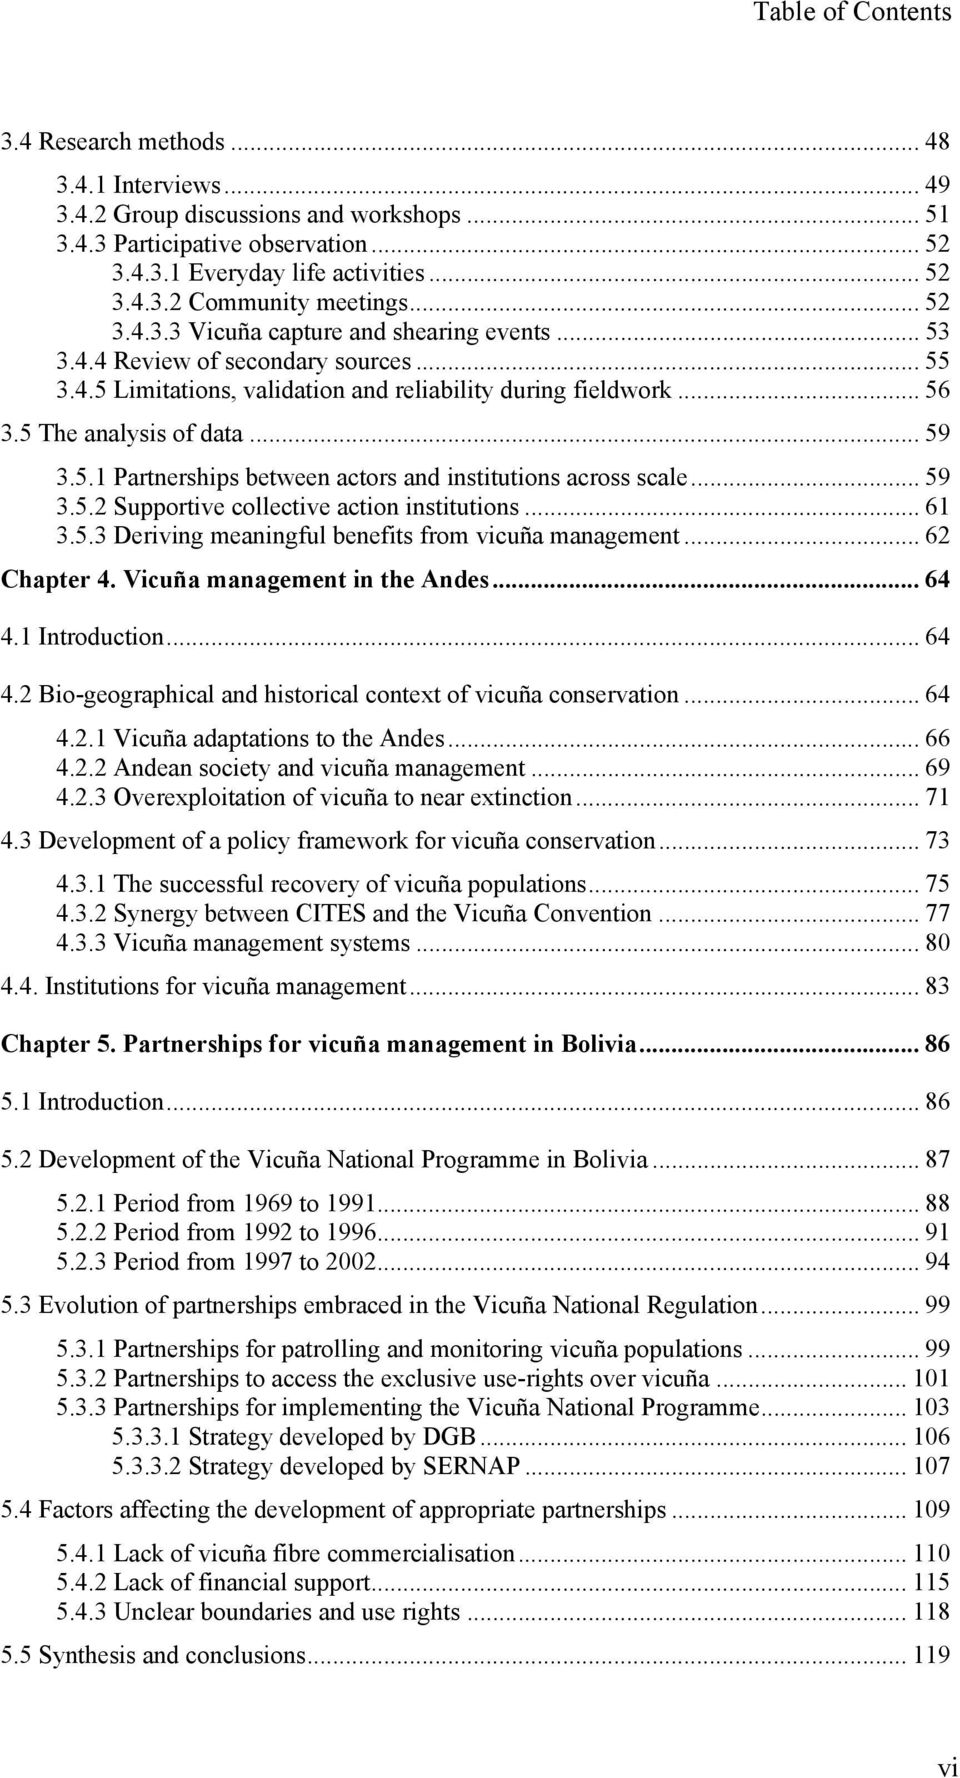 .. 59 3.5.2 Supportive collective action institutions... 61 3.5.3 Deriving meaningful benefits from vicuña management... 62 Chapter 4. Vicuña management in the Andes... 64 4.